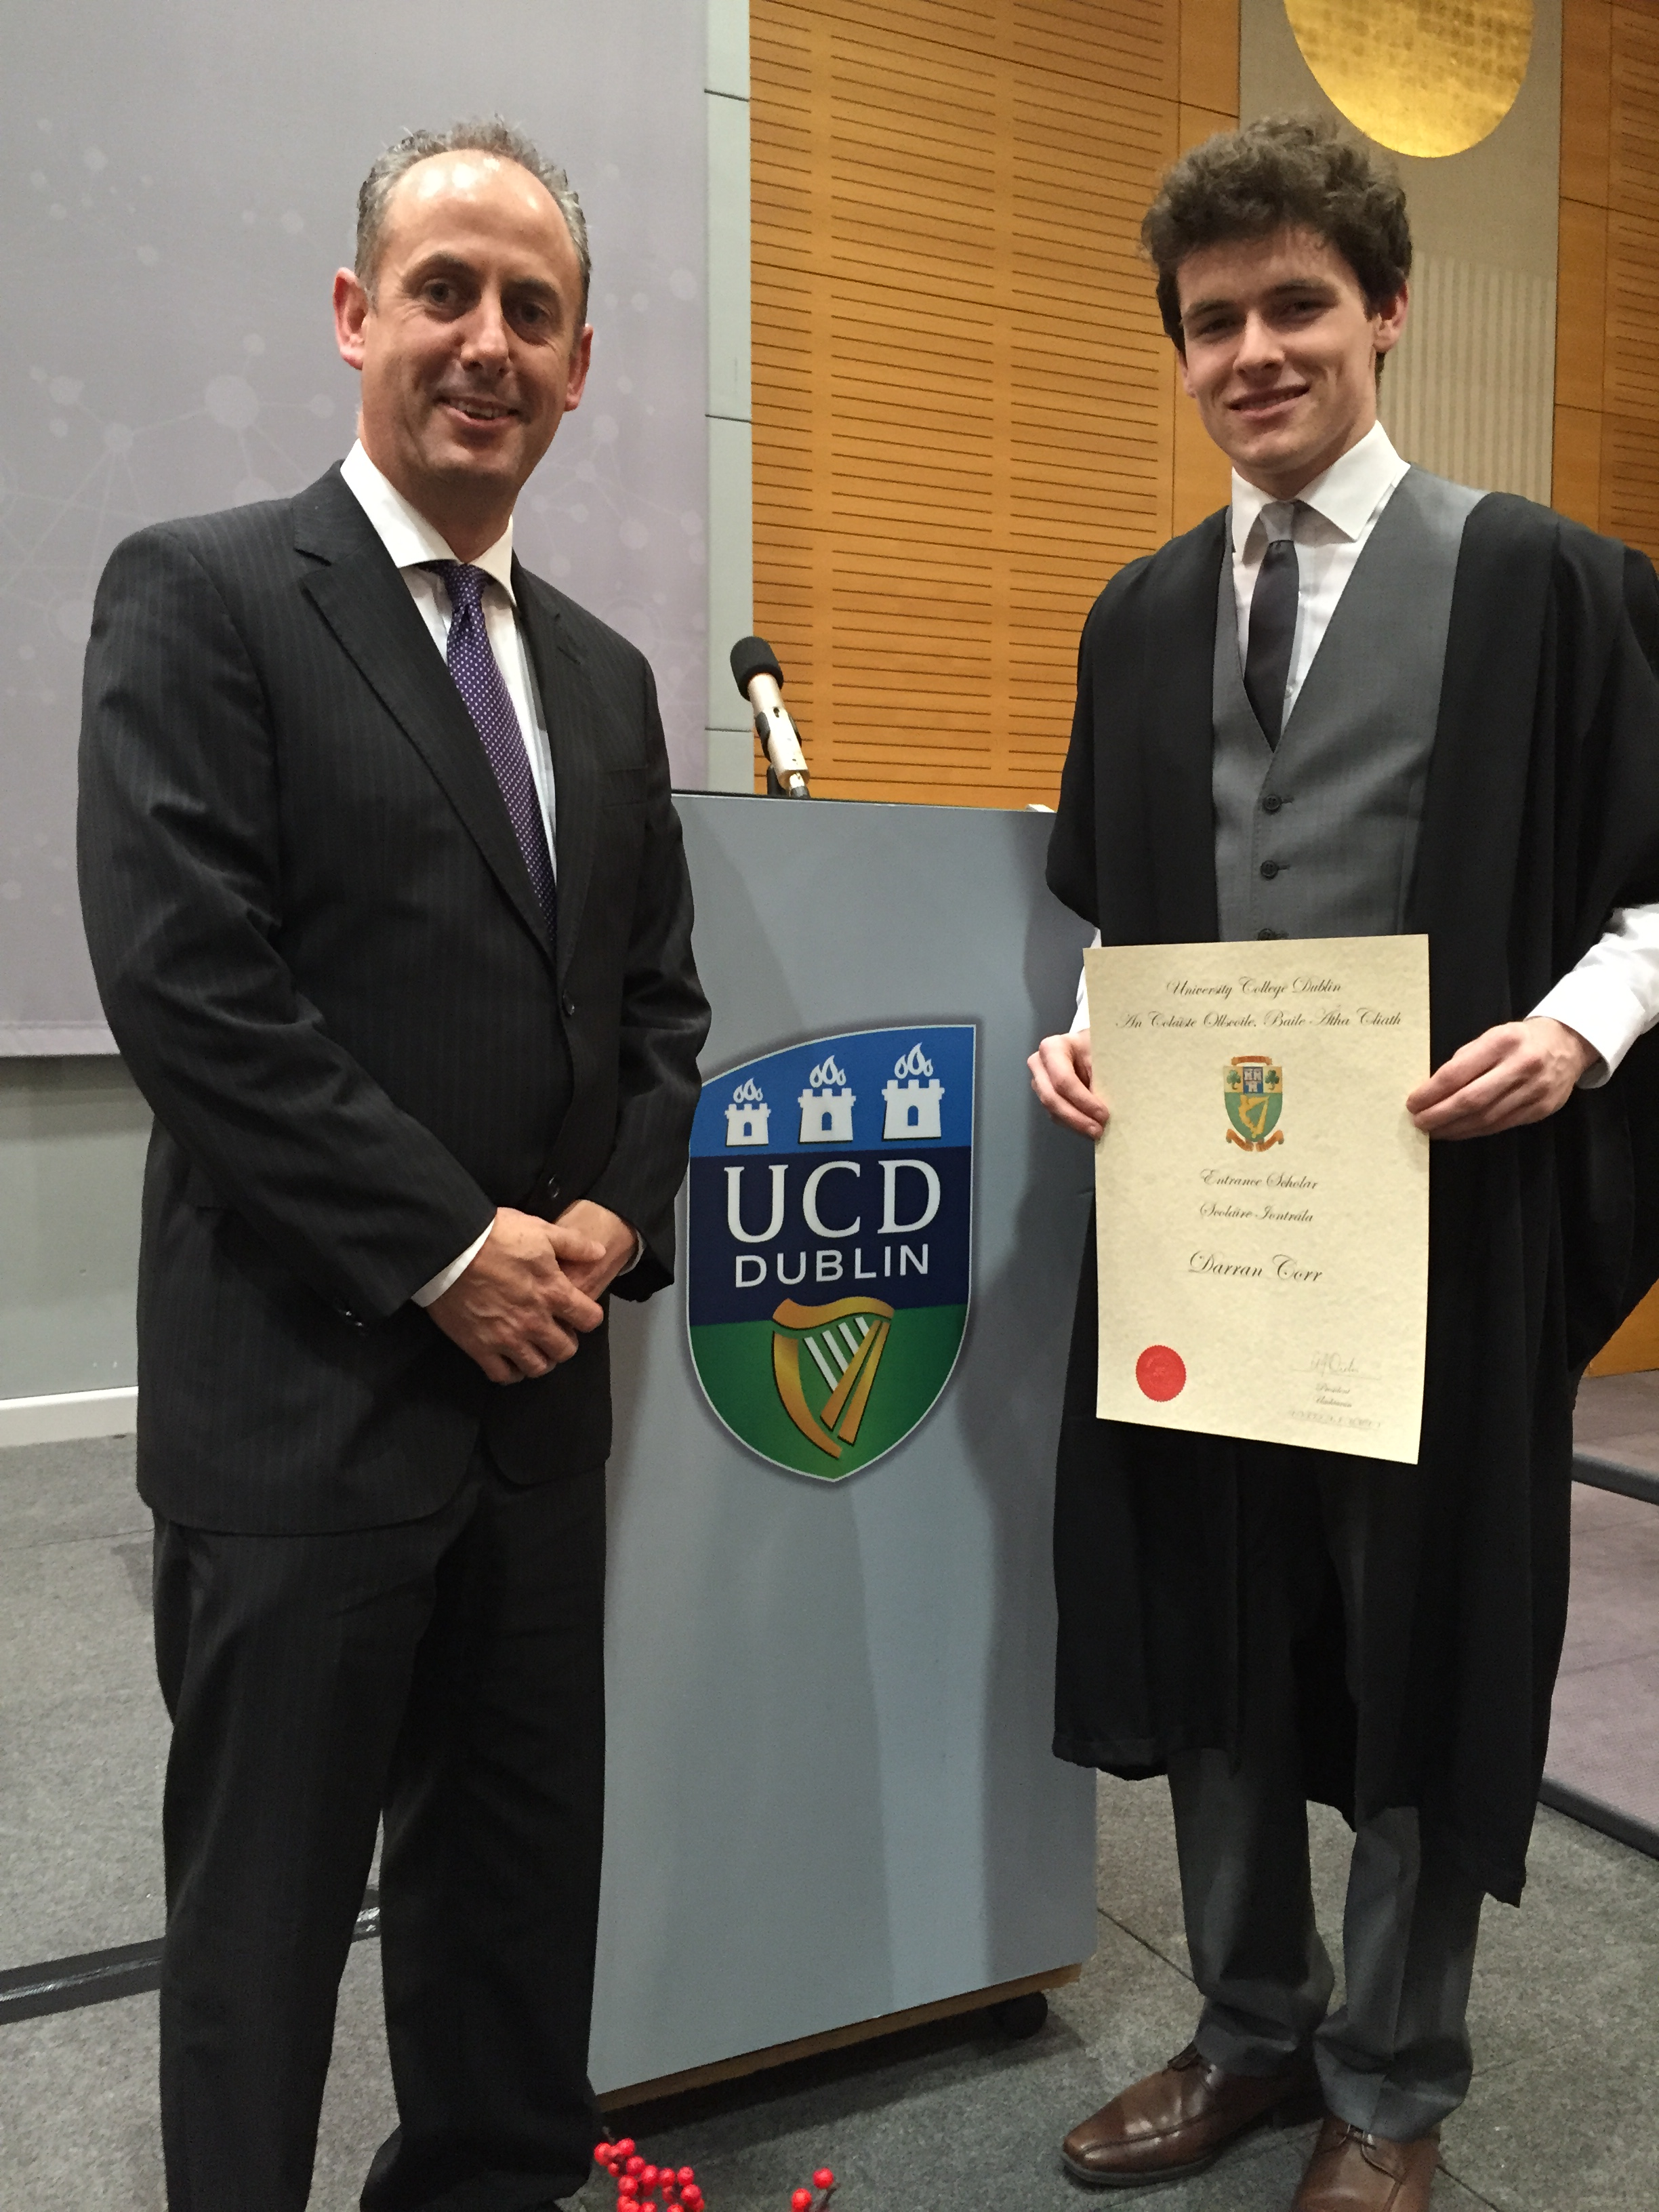 Darren receives his Entrance Scholarship from UCD. Here he is pictured with Deputy Principal Mr. Cathal Boyle at the ceremony.